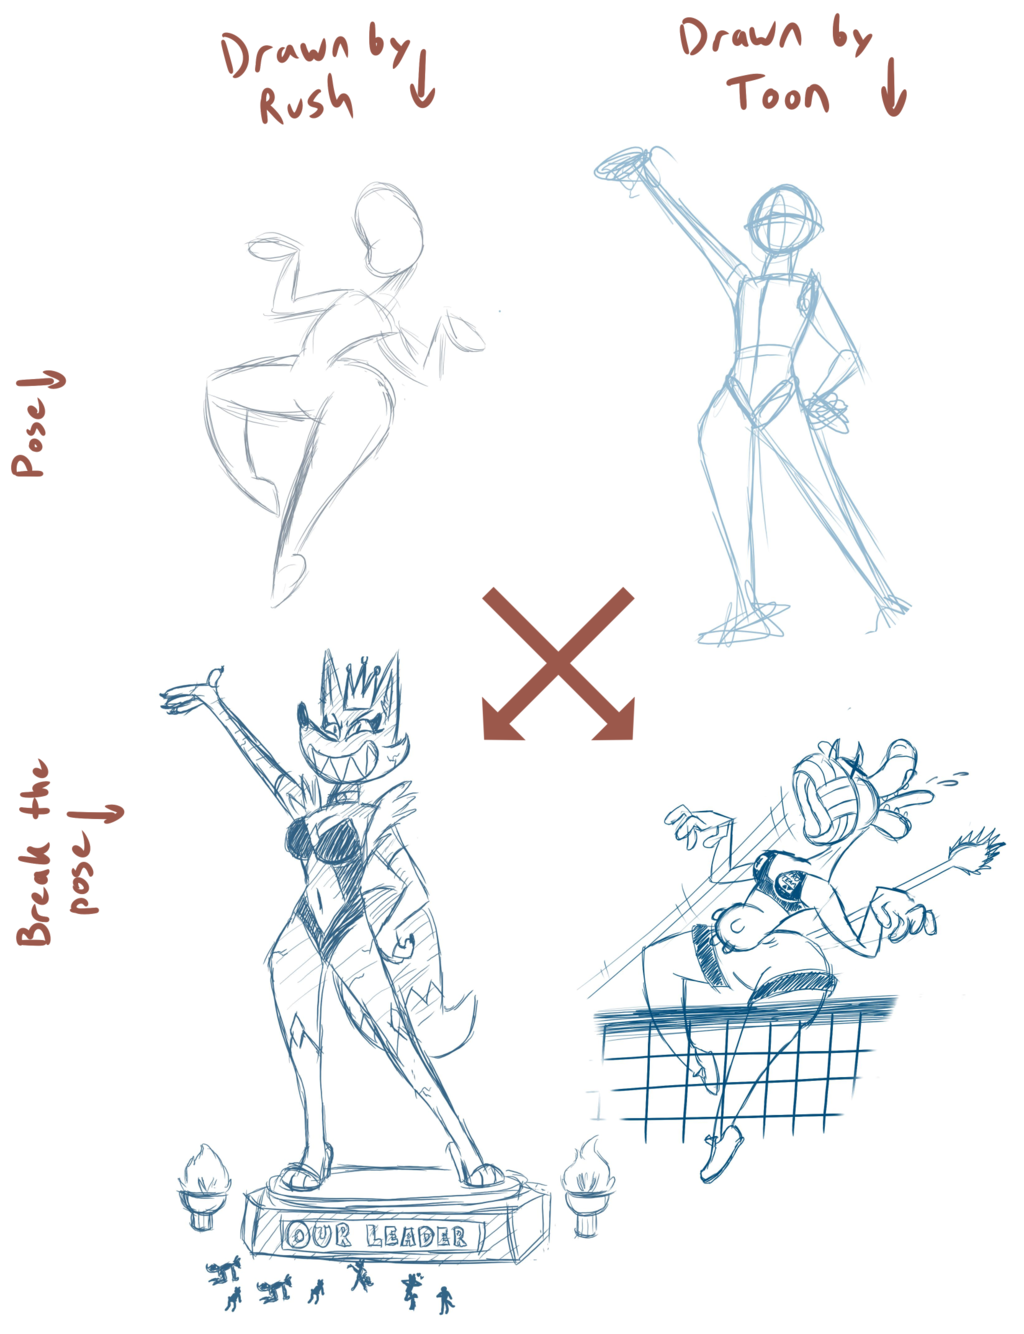 Toon's and Rush's Drawpile